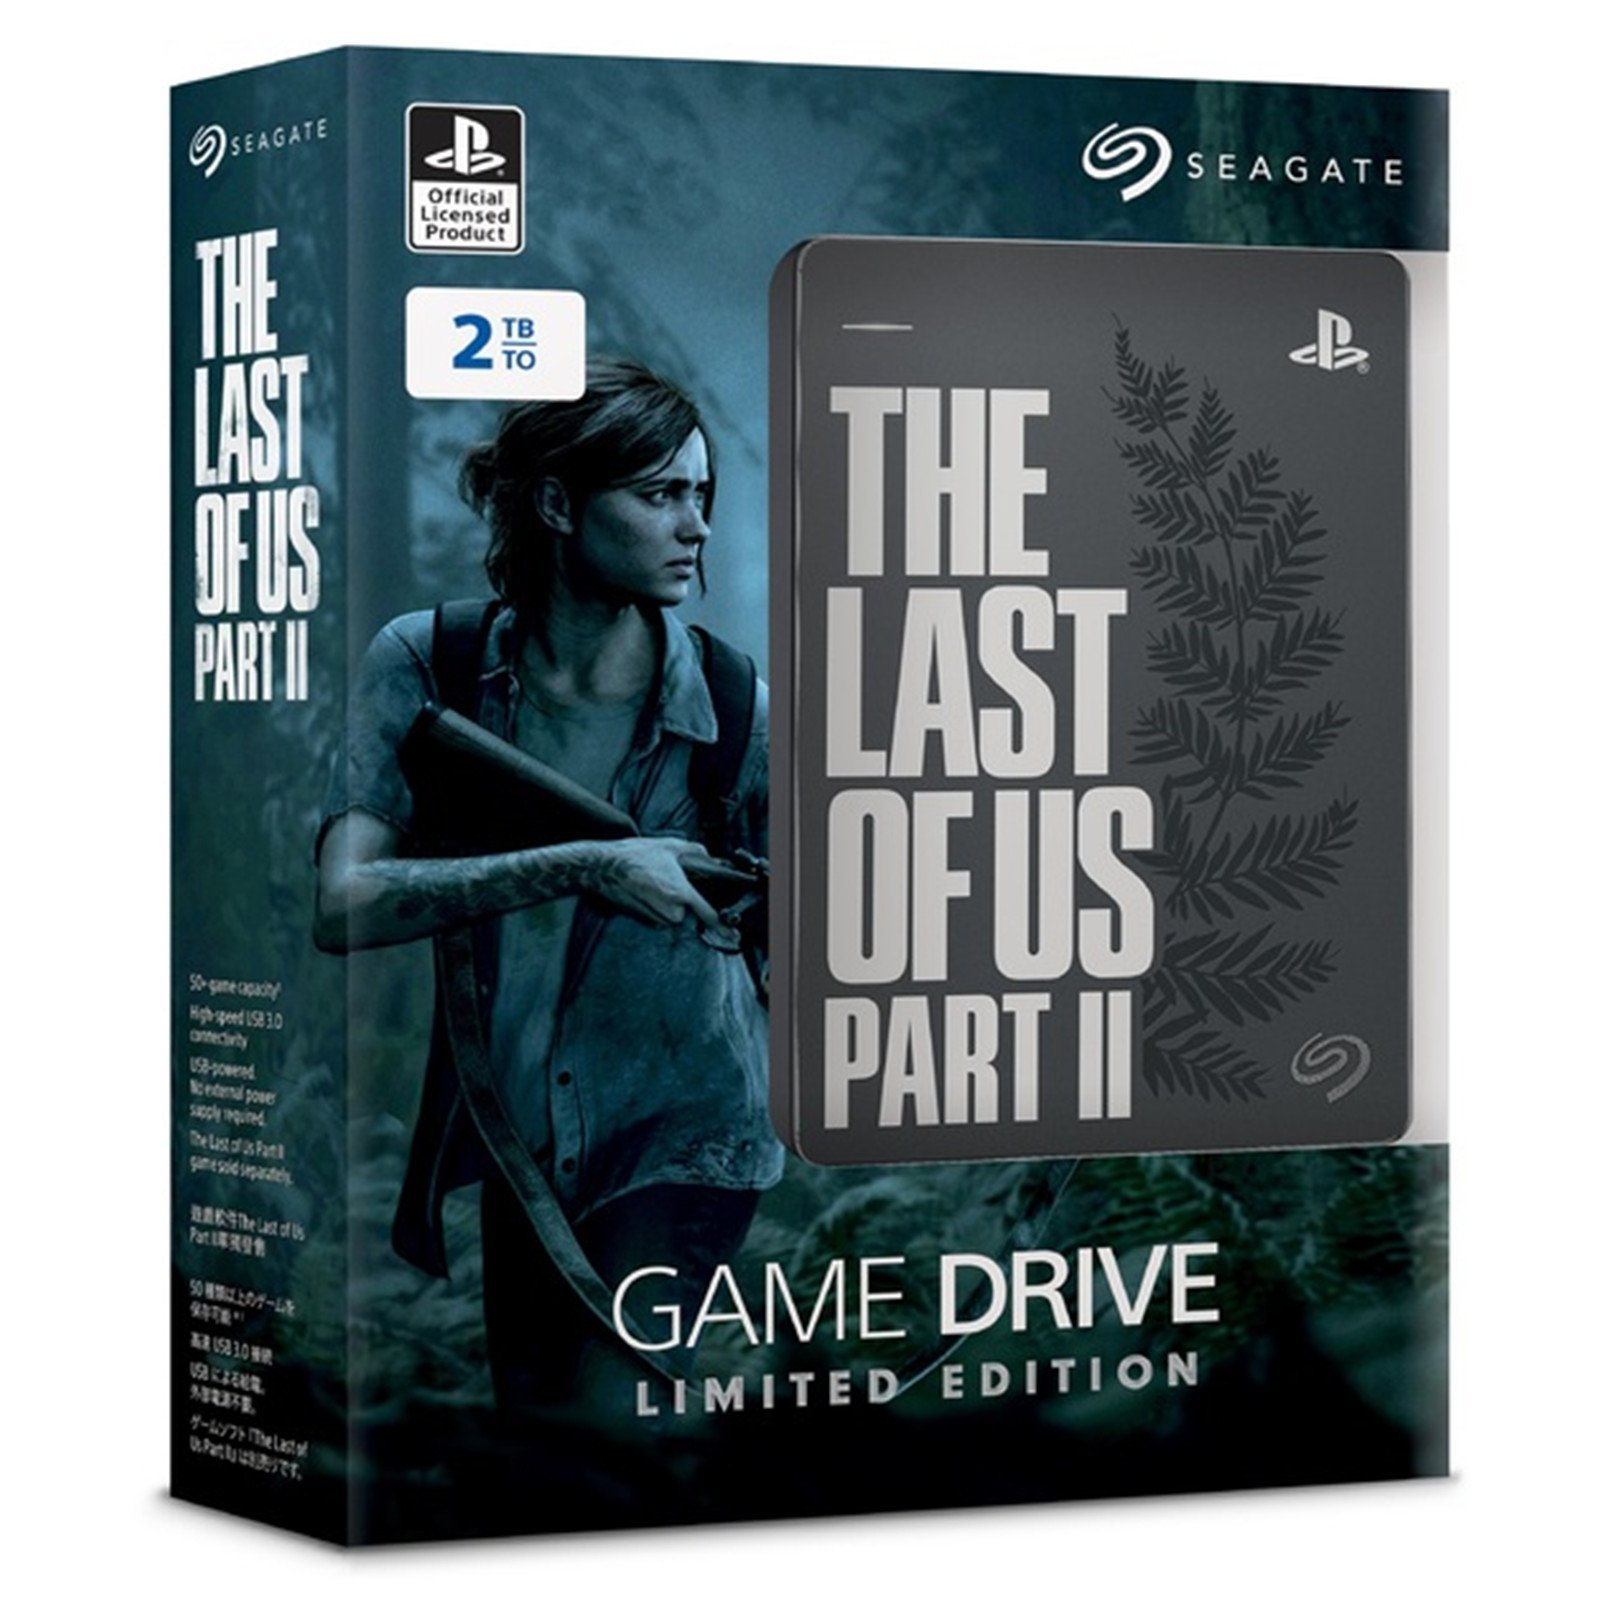 The Last of Us Part 2 Limited Edition 2 TB Game Drive Review 3